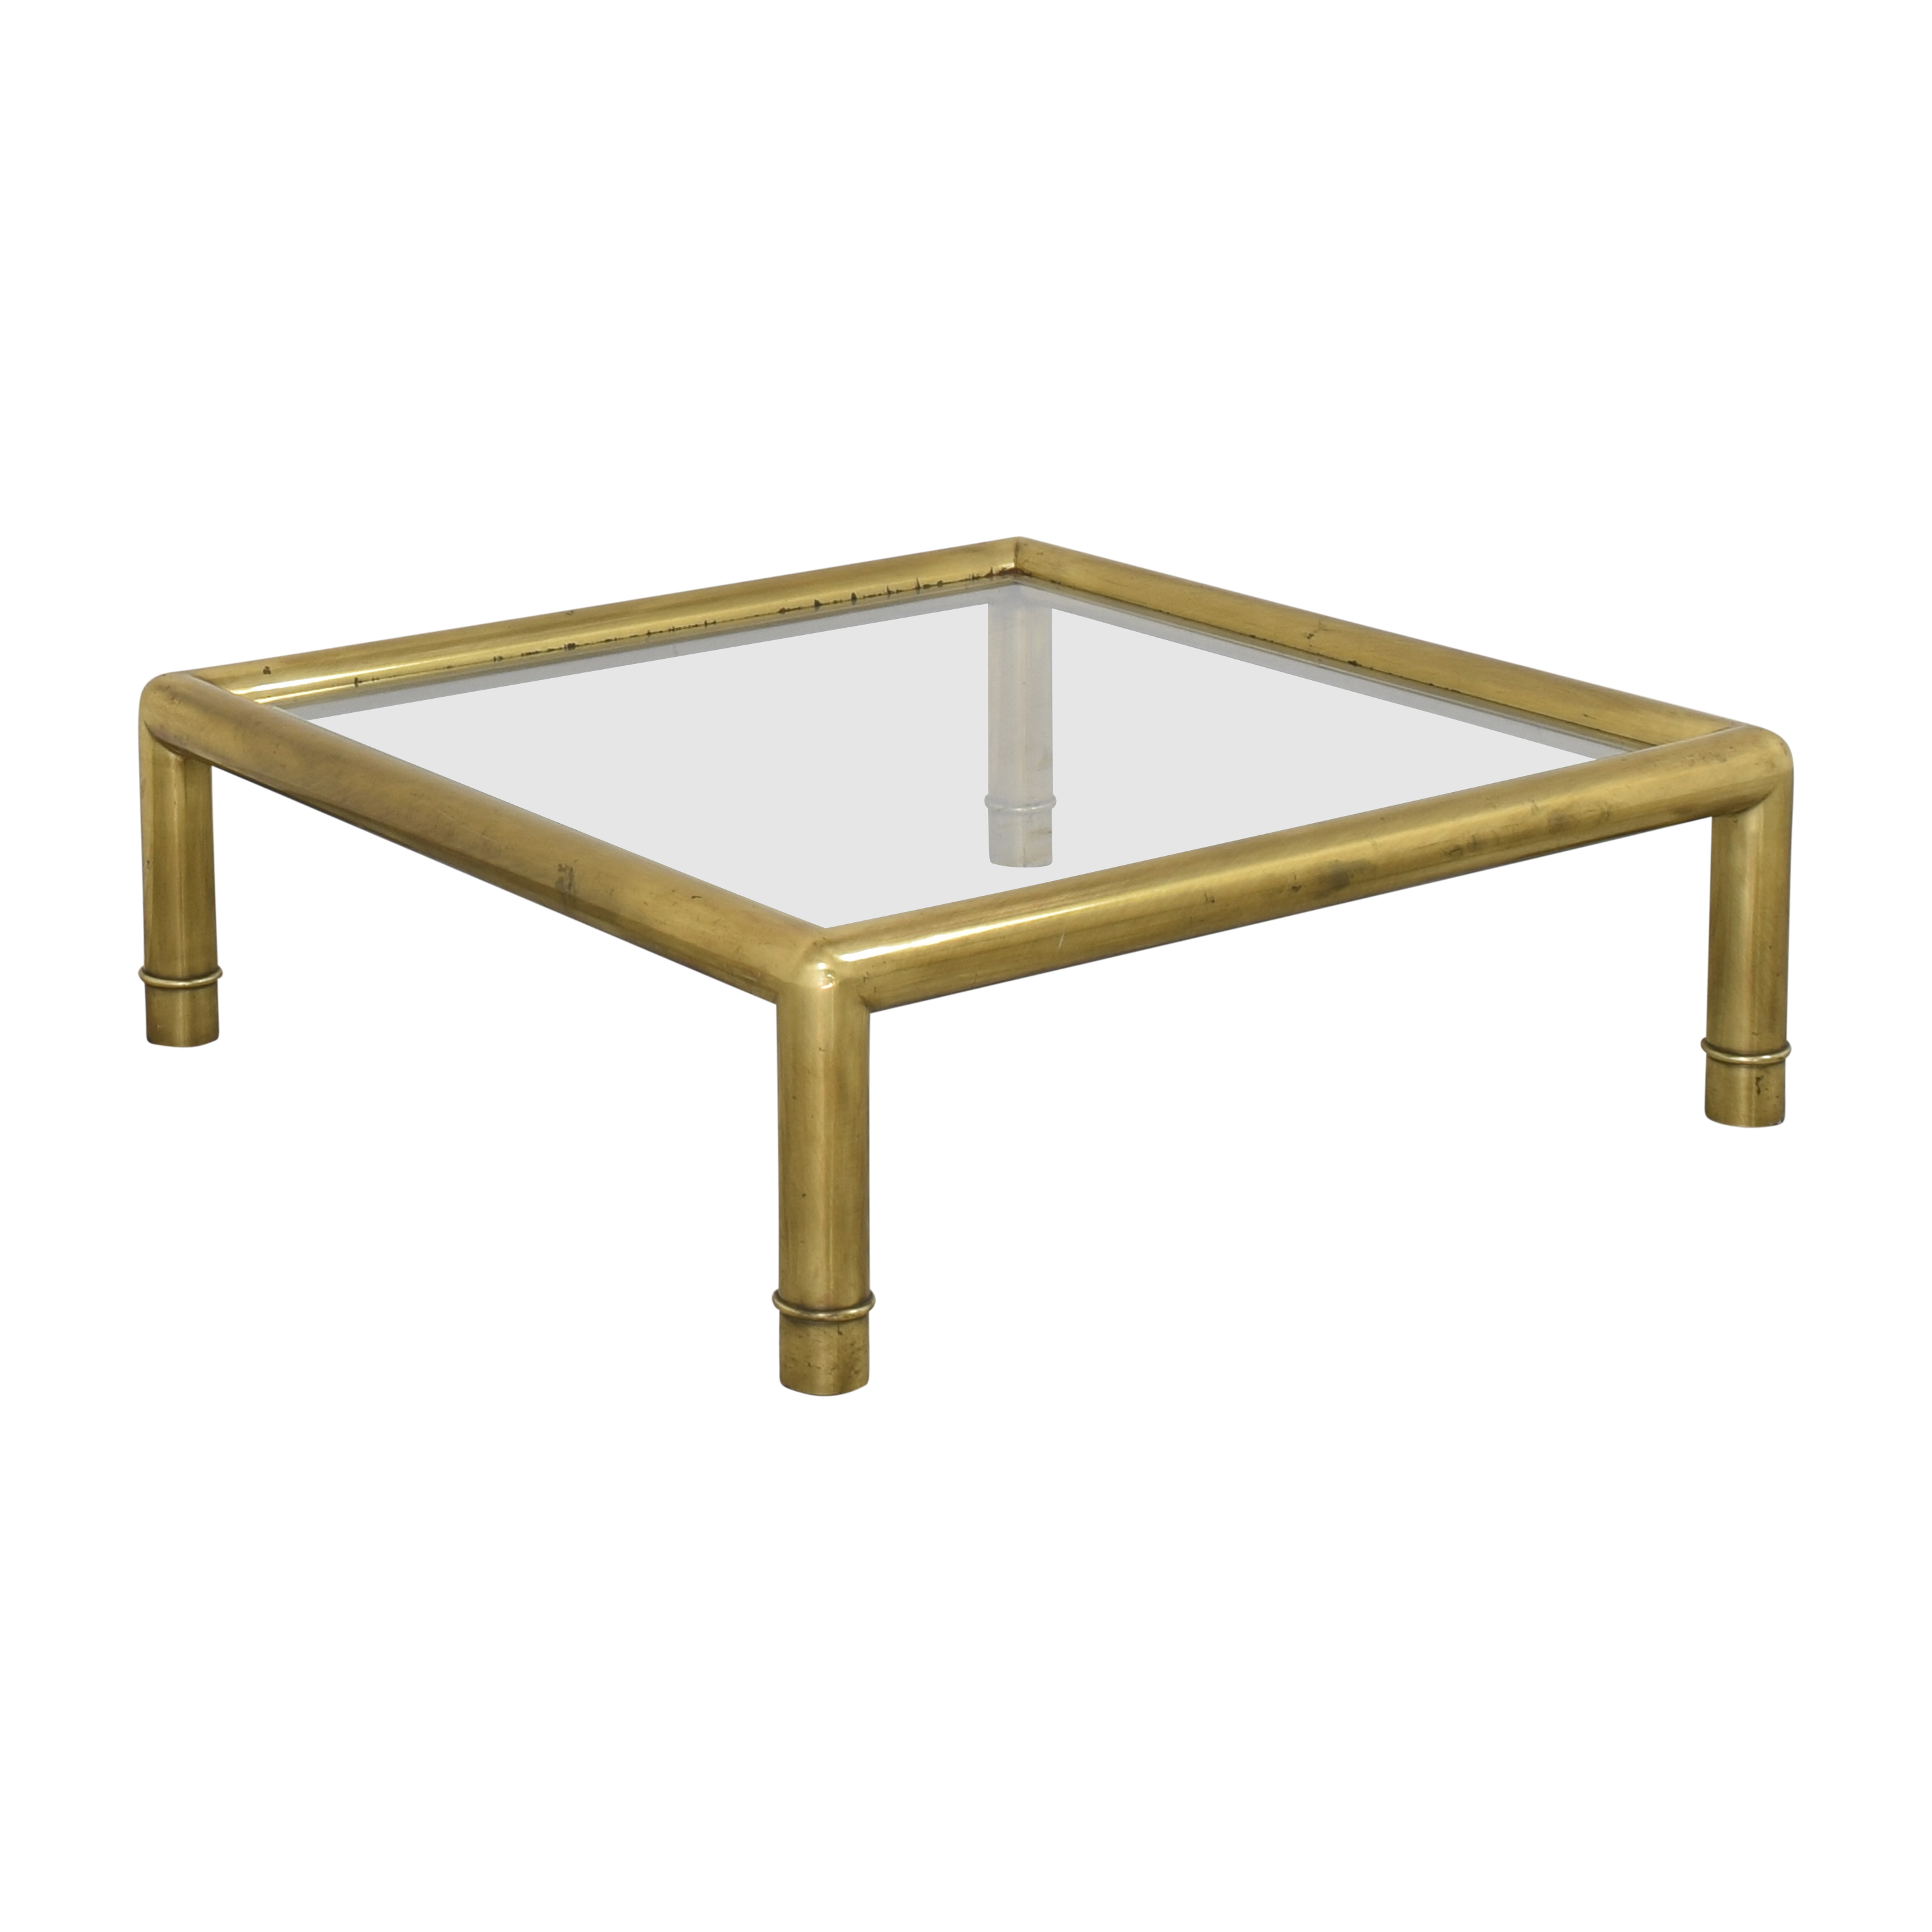 Baker Furniture Baker Furniture Coffee Table with Transparent Surface discount